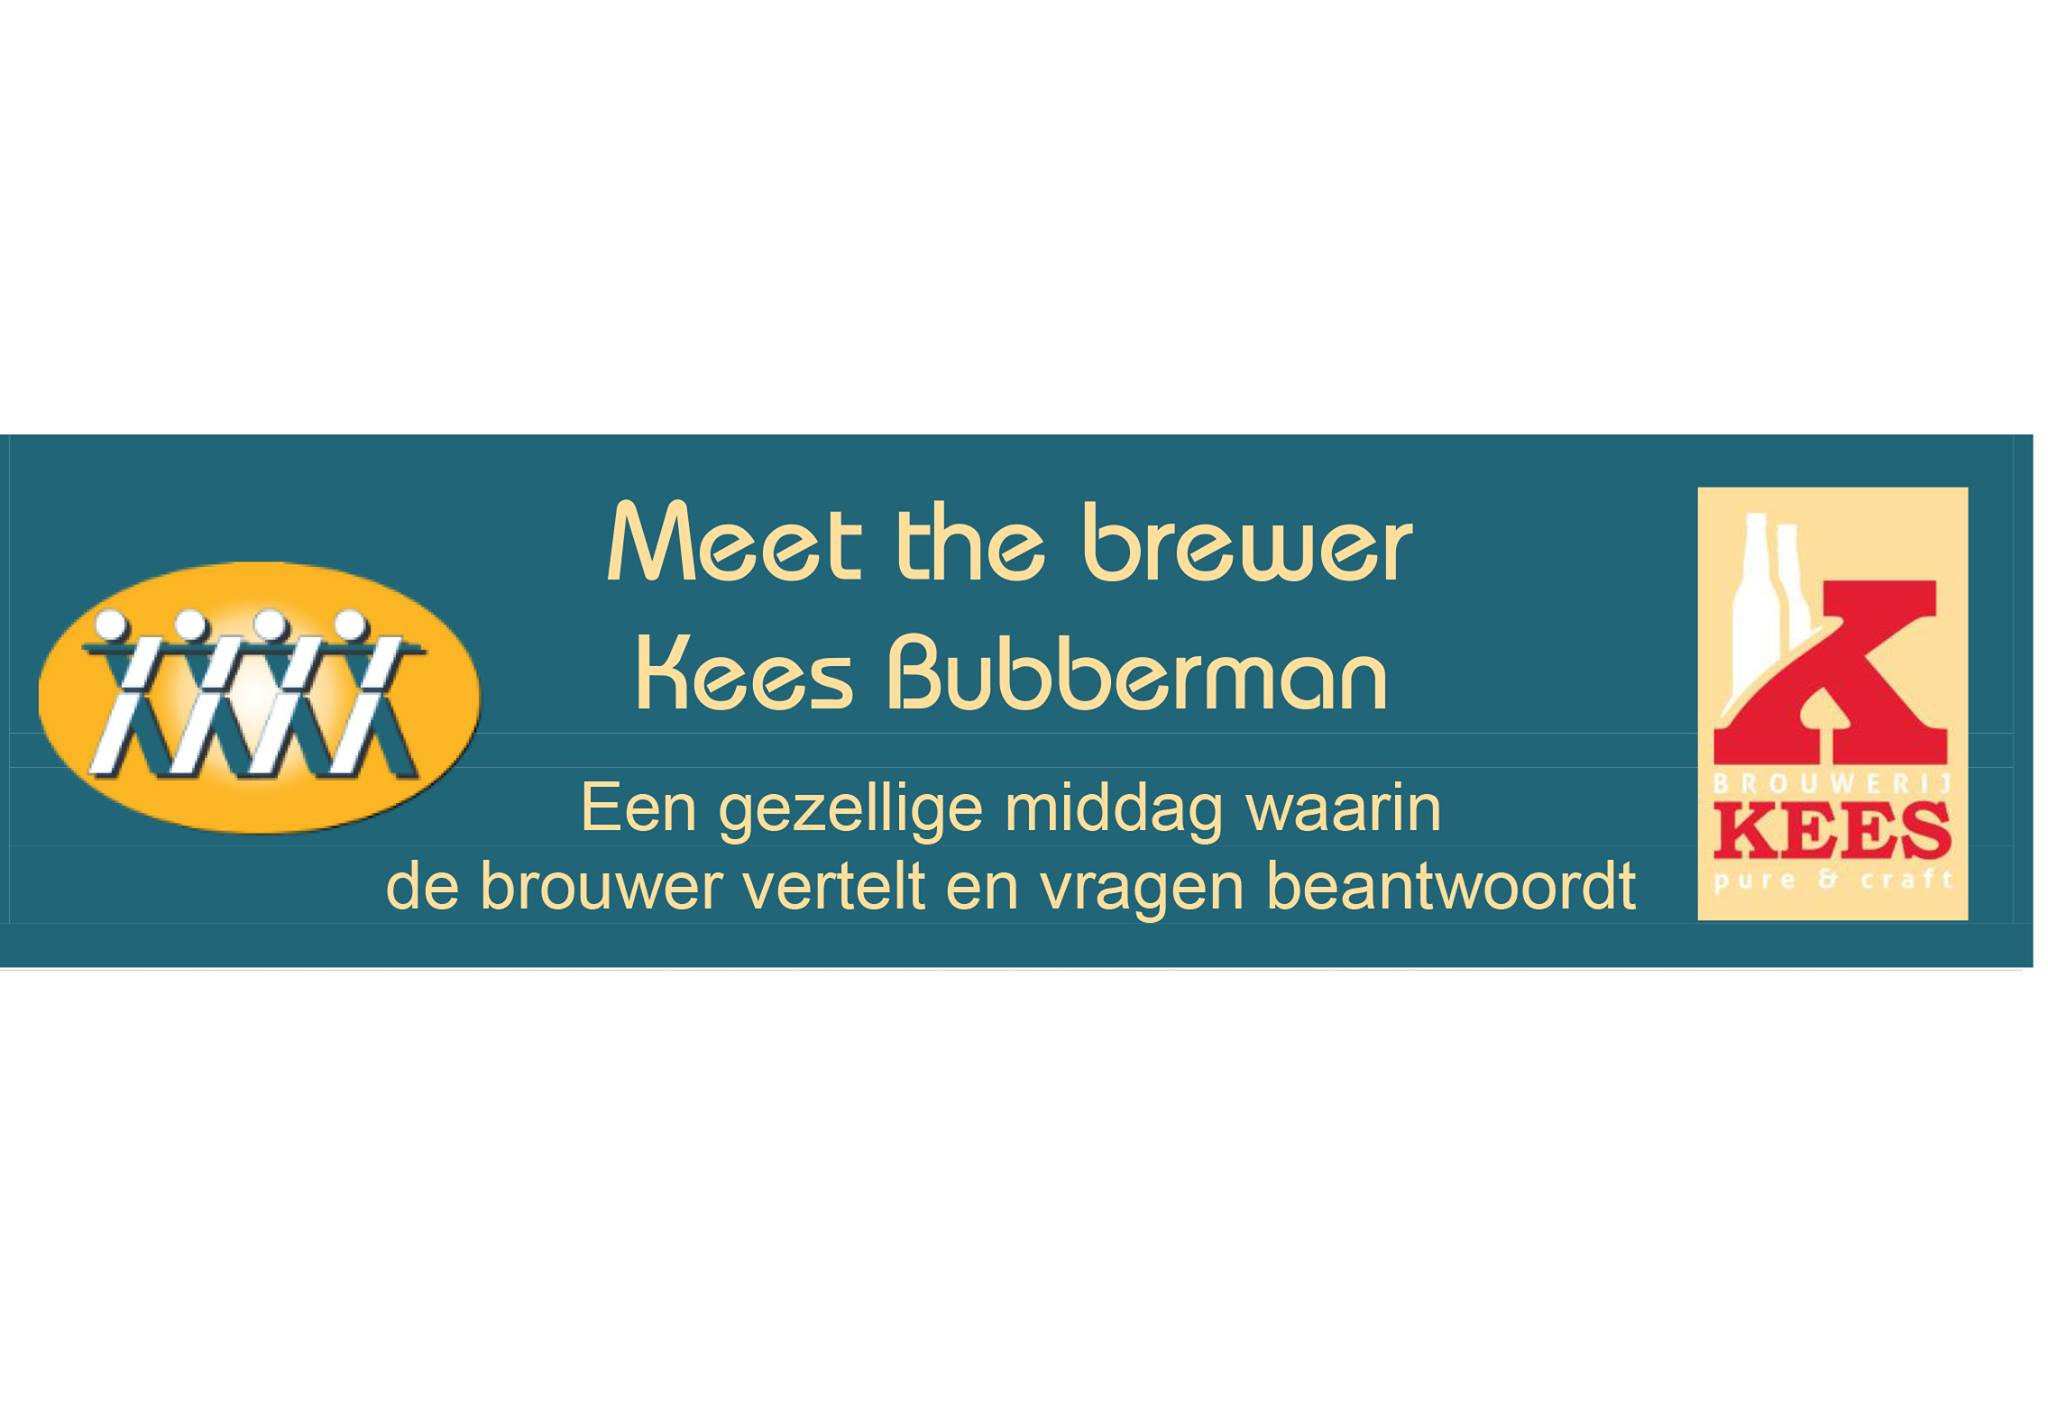 Meet the brewer Kees Bubberman